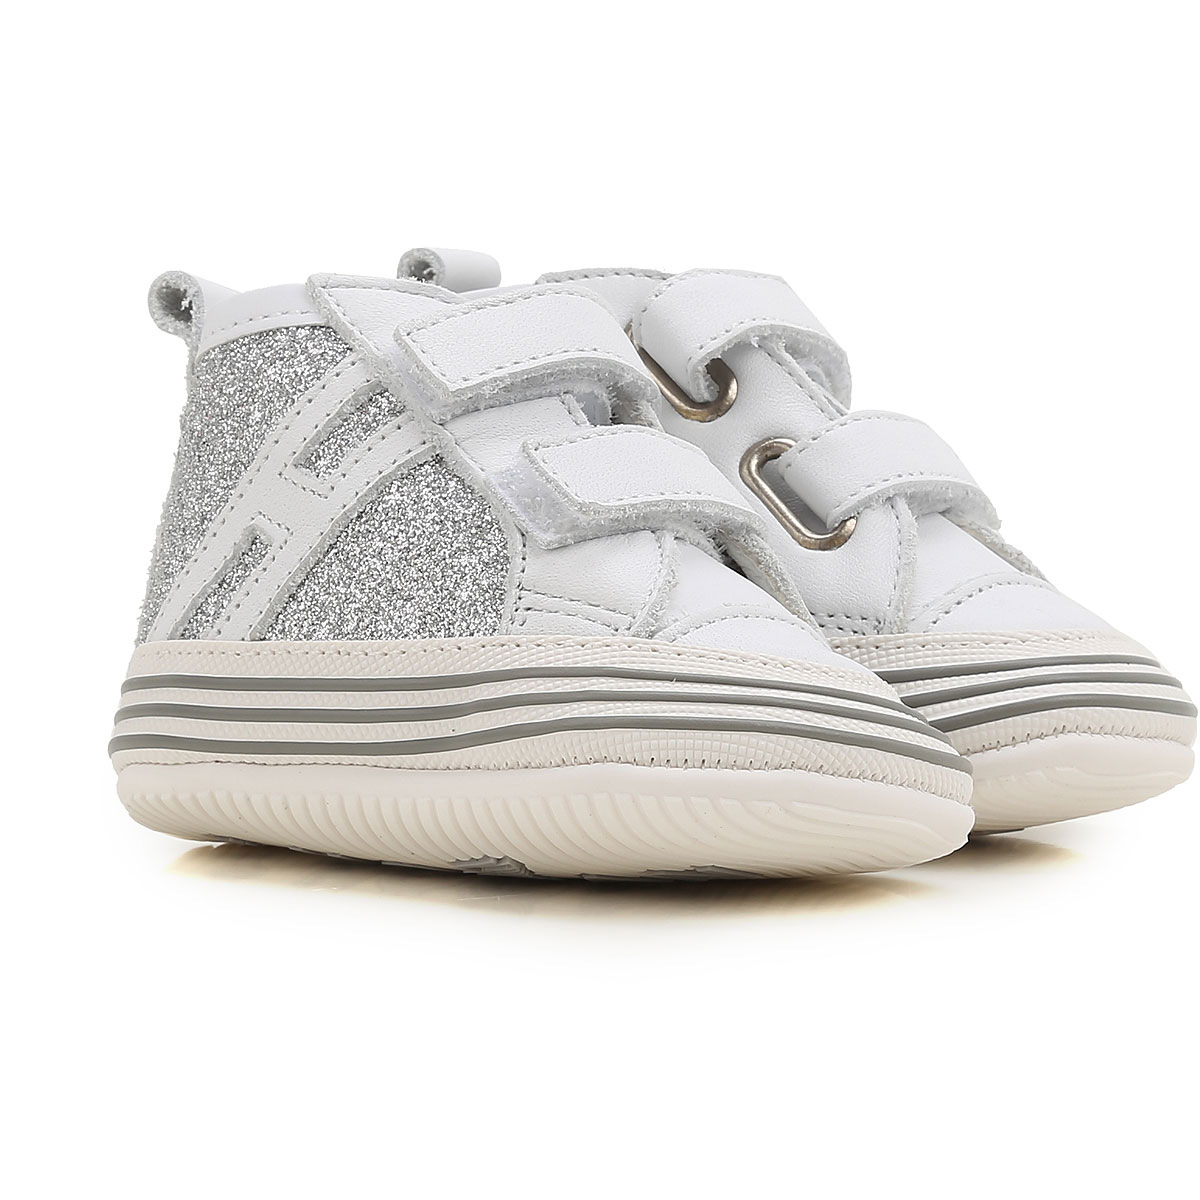 Image of Hogan Baby Shoes for Girls On Sale in Outlet, White, Leather, 2017, 18 20